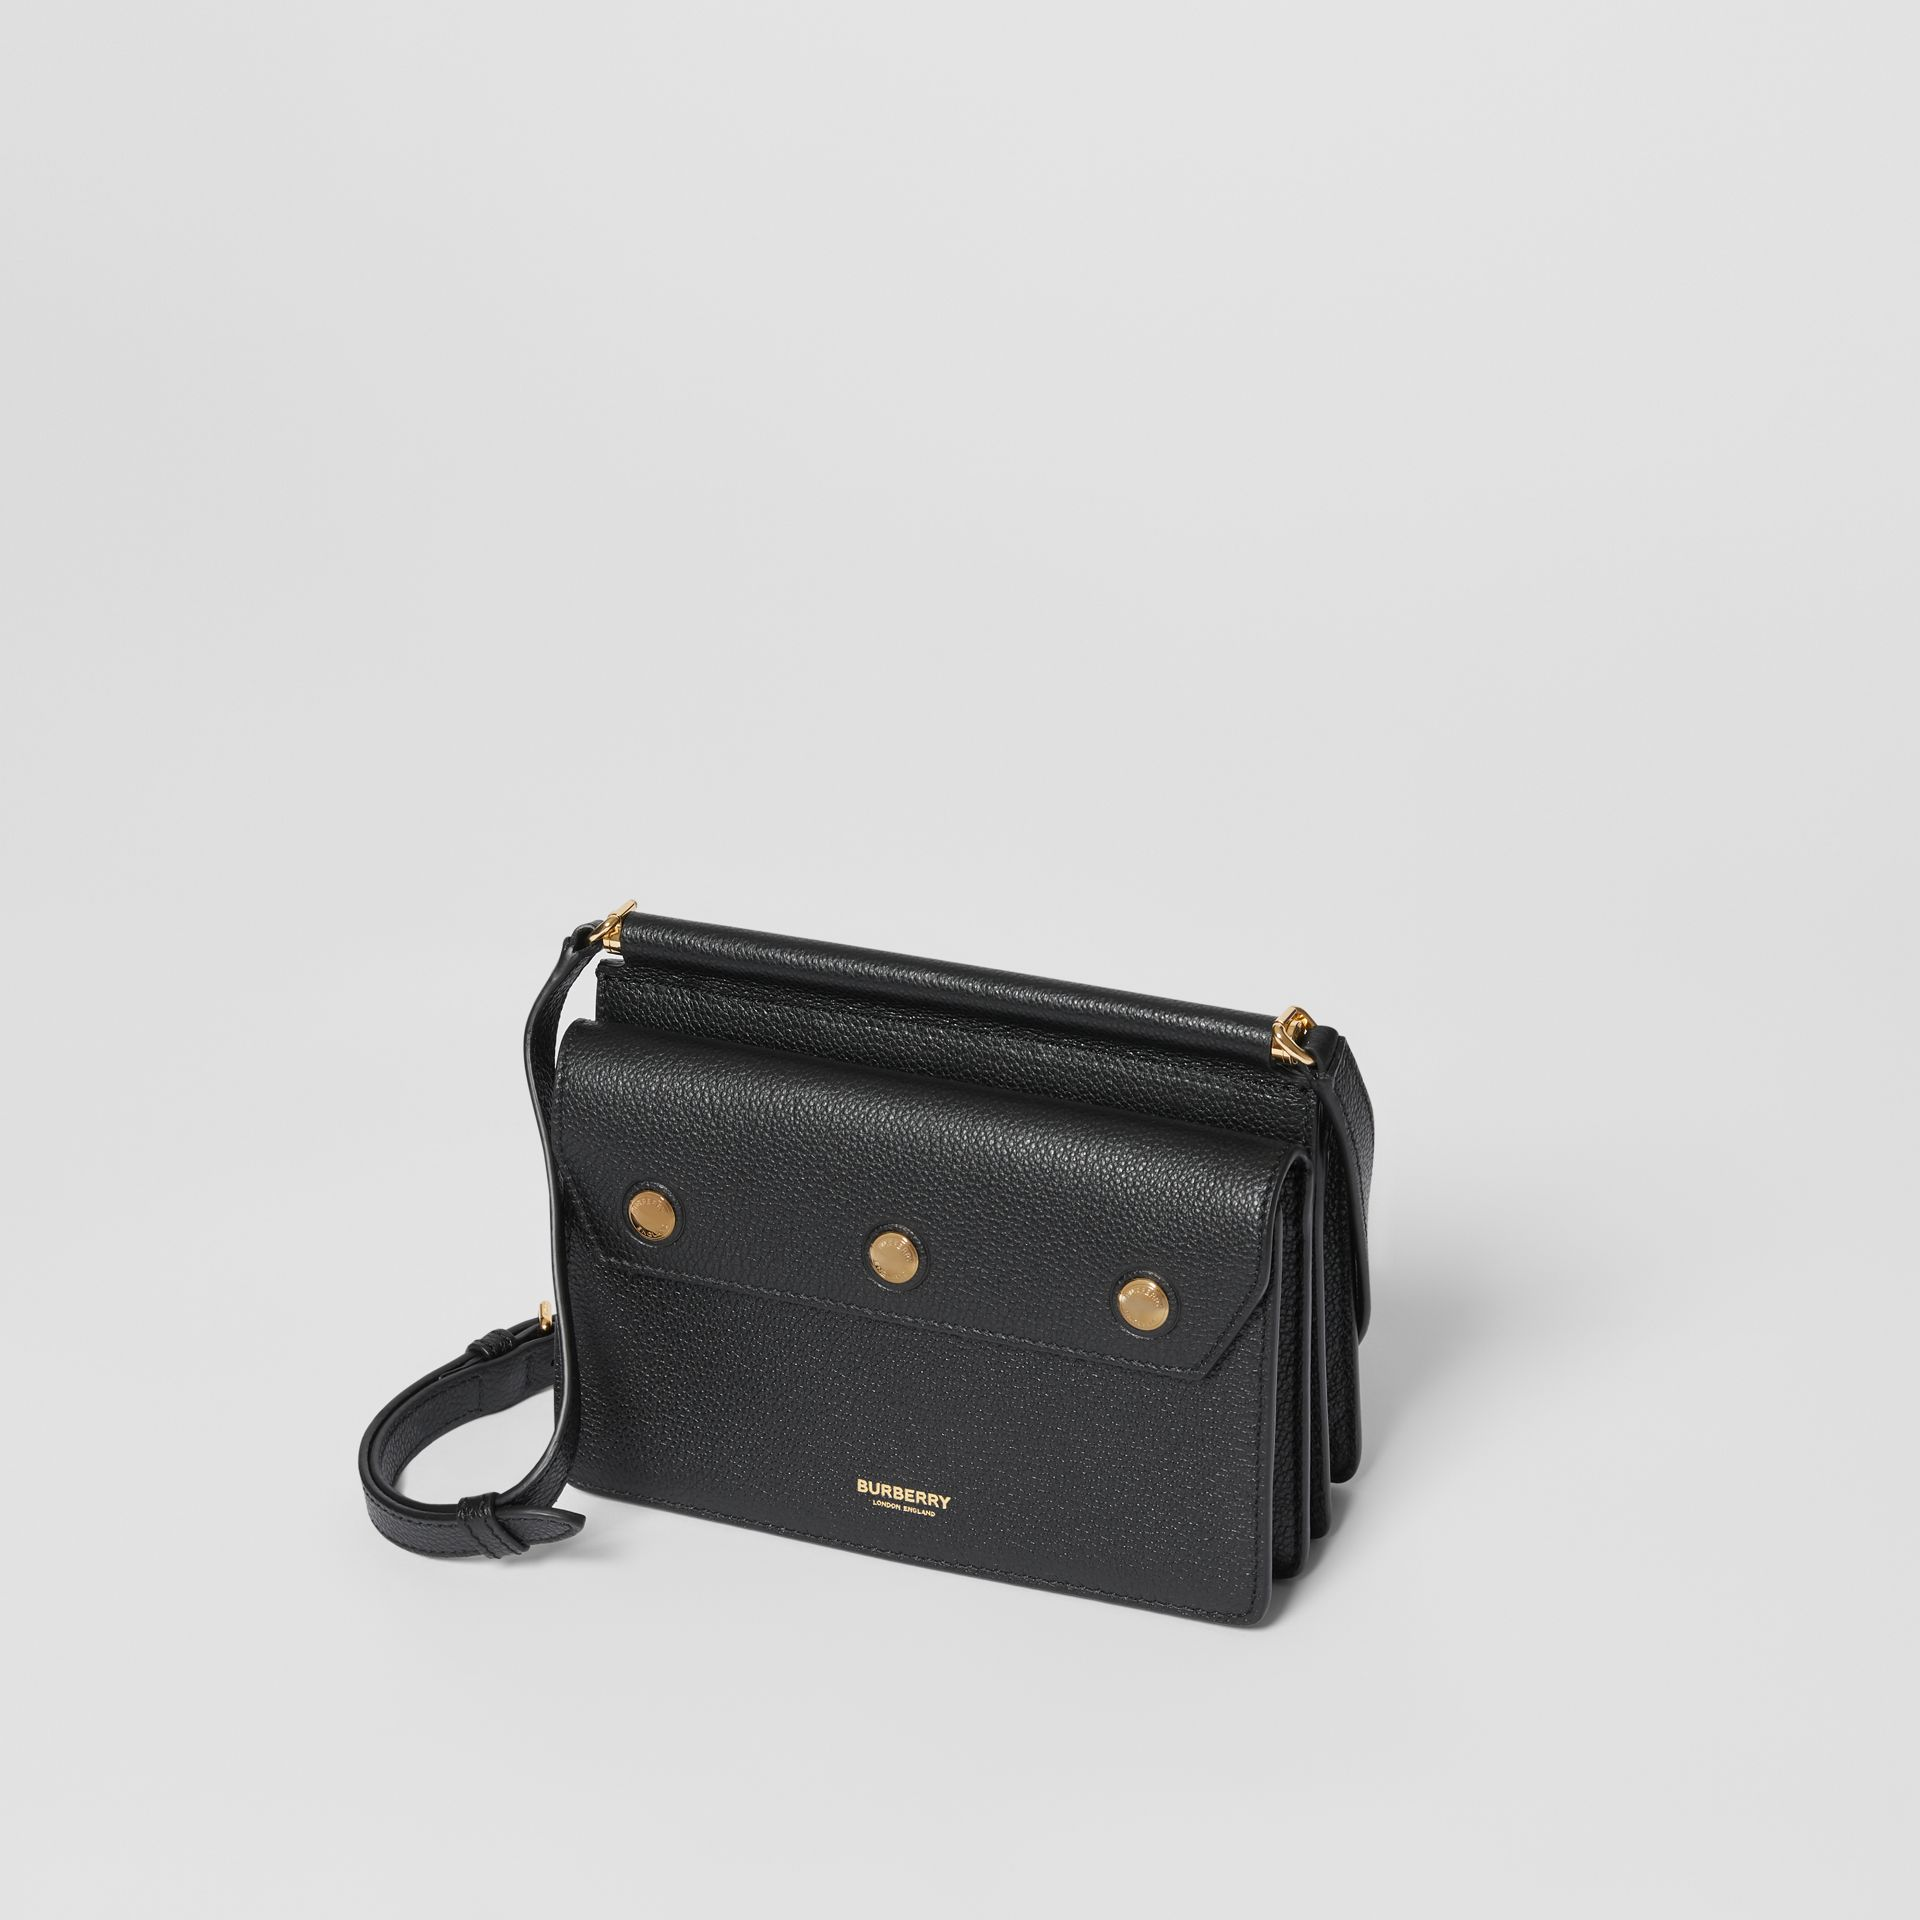 Mini Leather Title Bag with Pocket Detail in Black - Women | Burberry Singapore - gallery image 3